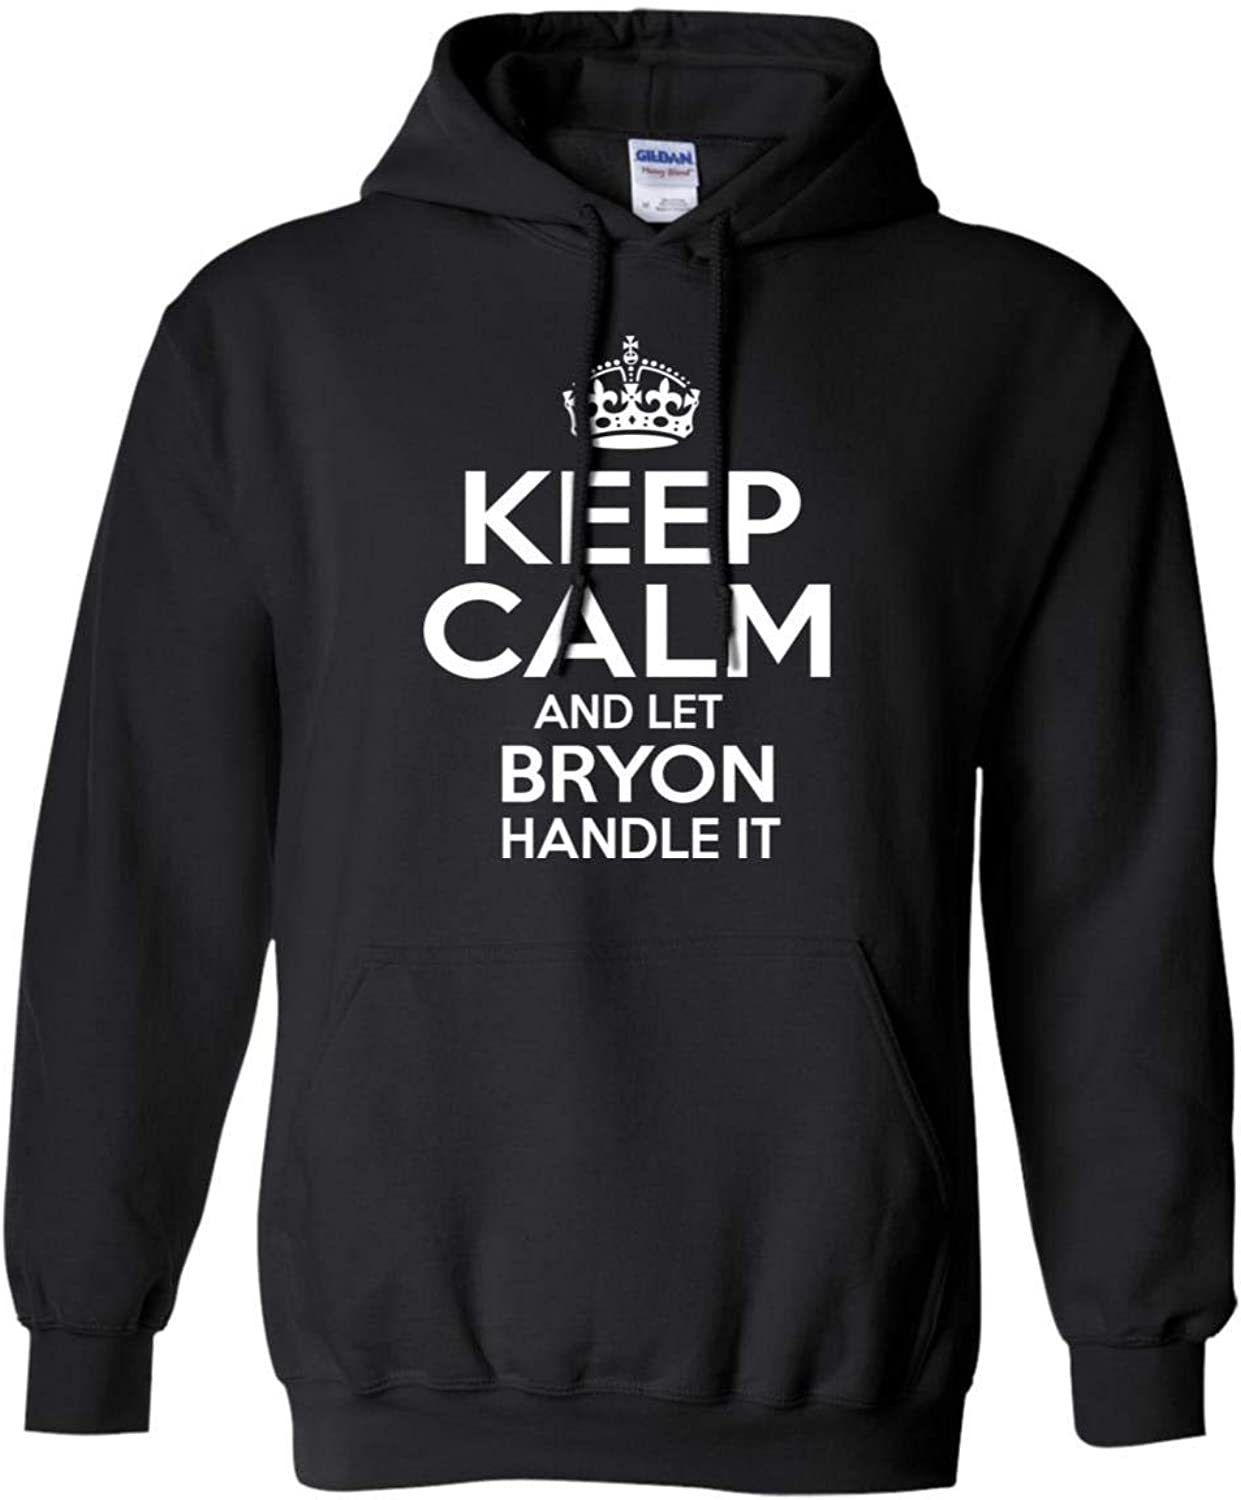 Tee Shine Keep Calm and Let Bryon Handle It Sweatshirt Personalized Name Christmas, Birthday Gifts Ideas Black, Navy S5XL